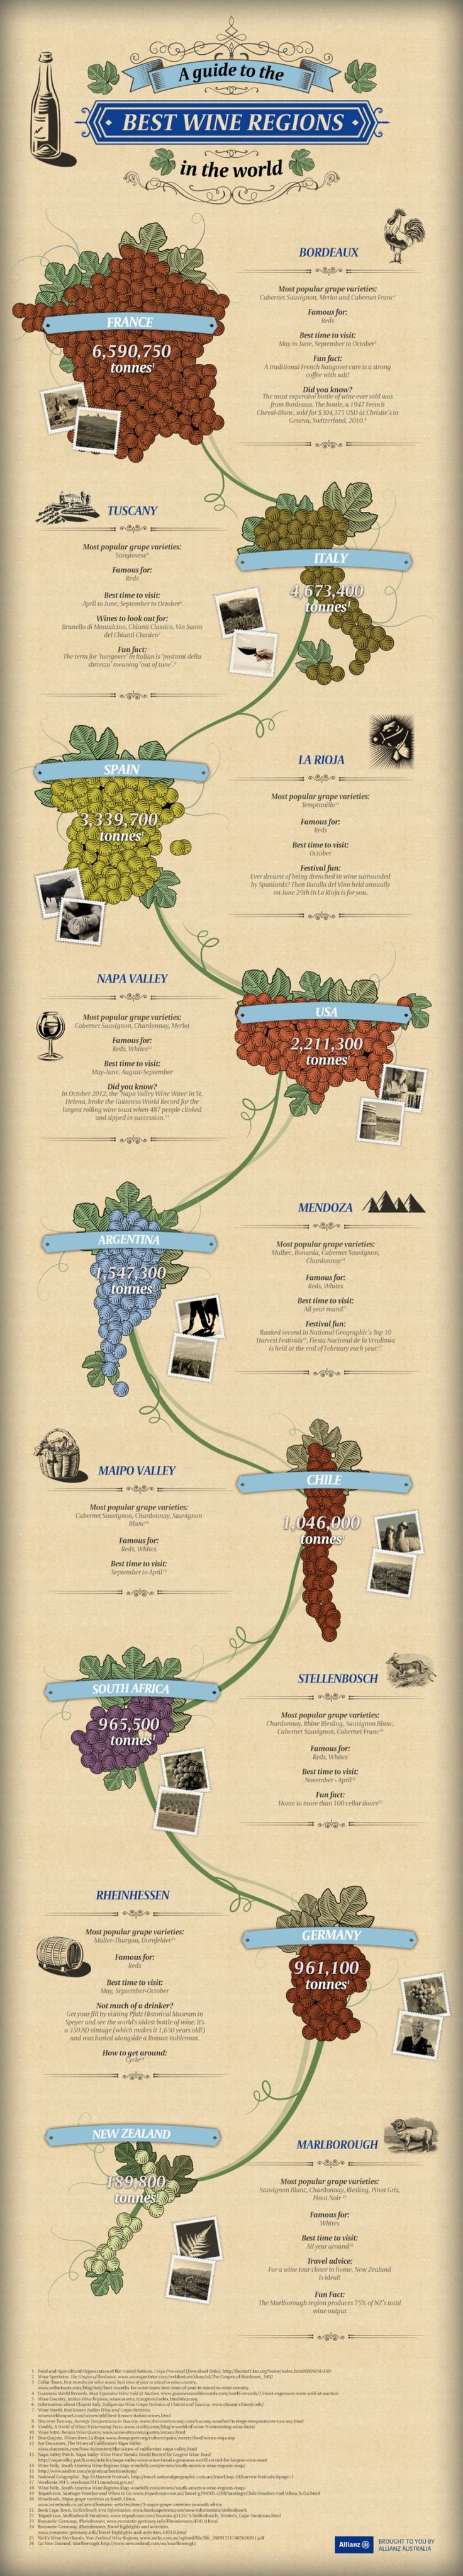 Wine | Tipsographic | More wine tips at http://www.tipsographic.com/